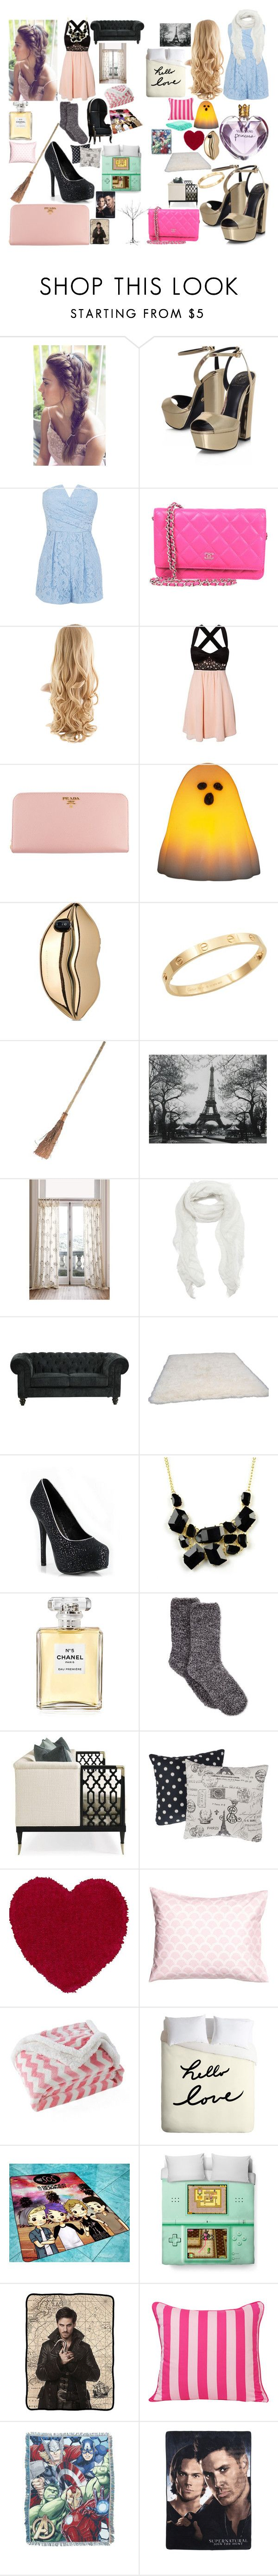 """my futre house with my twin"" by bellerose-44 ❤ liked on Polyvore featuring KG Kurt Geiger, Vera Wang, Chanel, Prada, STELLA McCARTNEY, Cachet, Subtle Luxury, nuLOOM, Emi Jewellery and Charter Club"